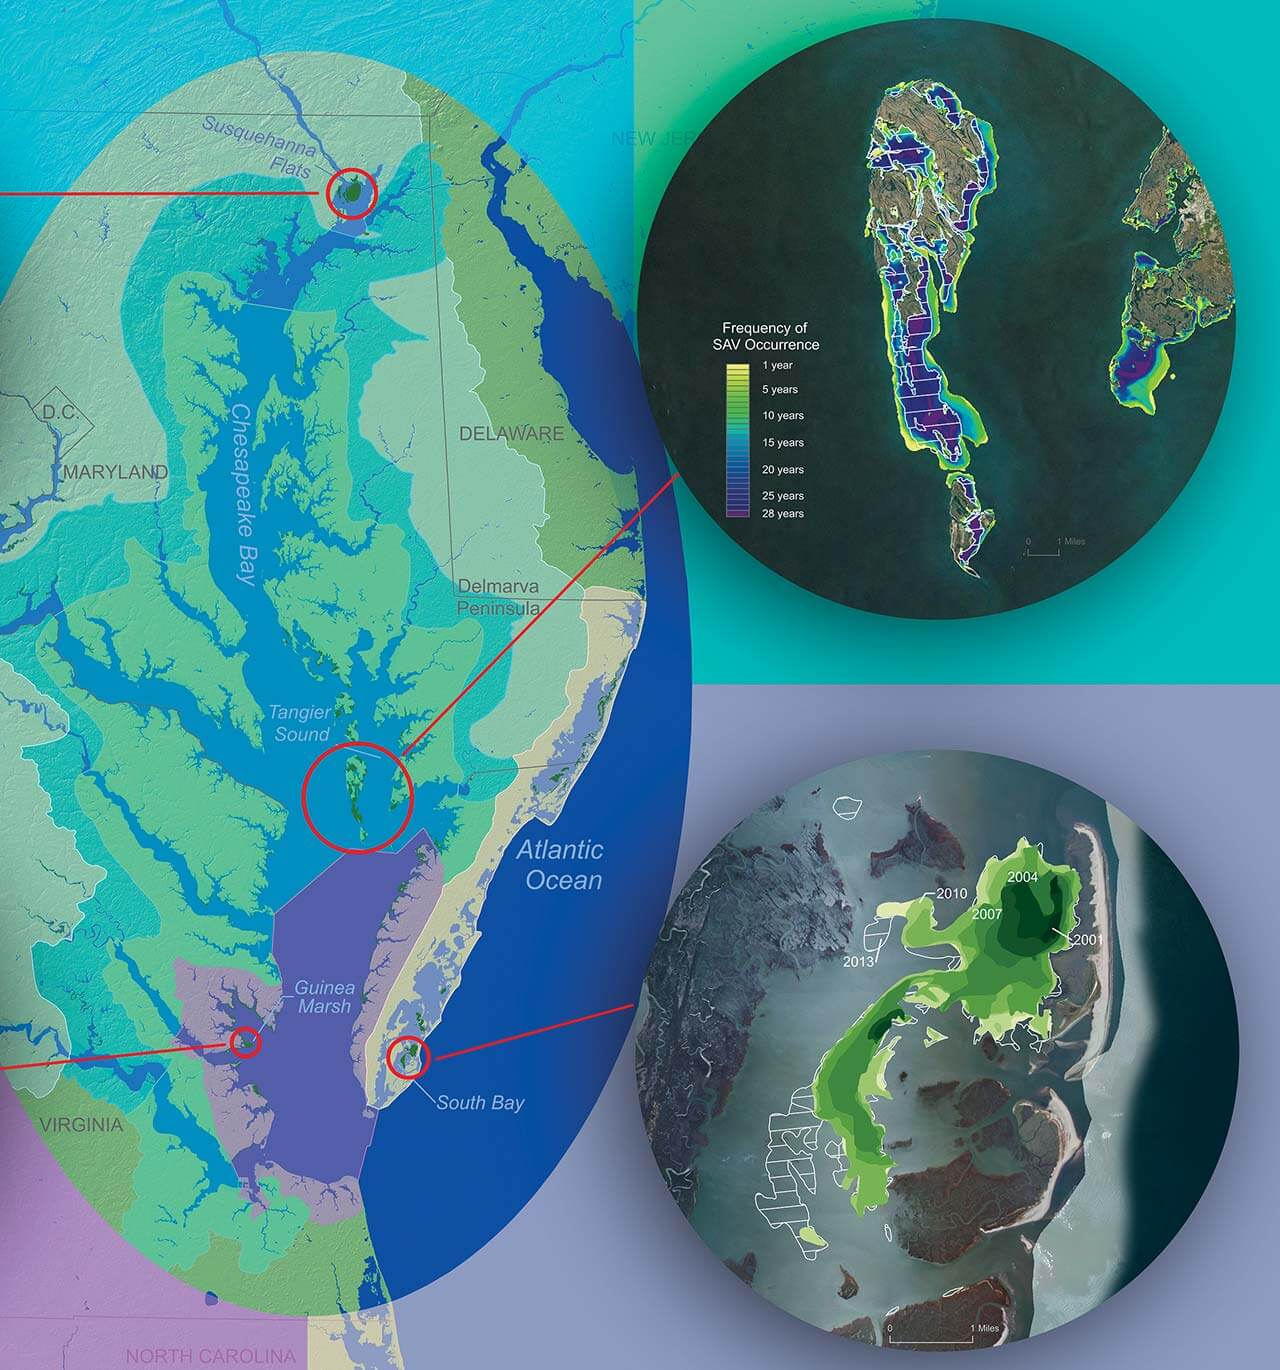 Arcgis pro professional 2d 3d gis mapping software advanced analytics gumiabroncs Choice Image